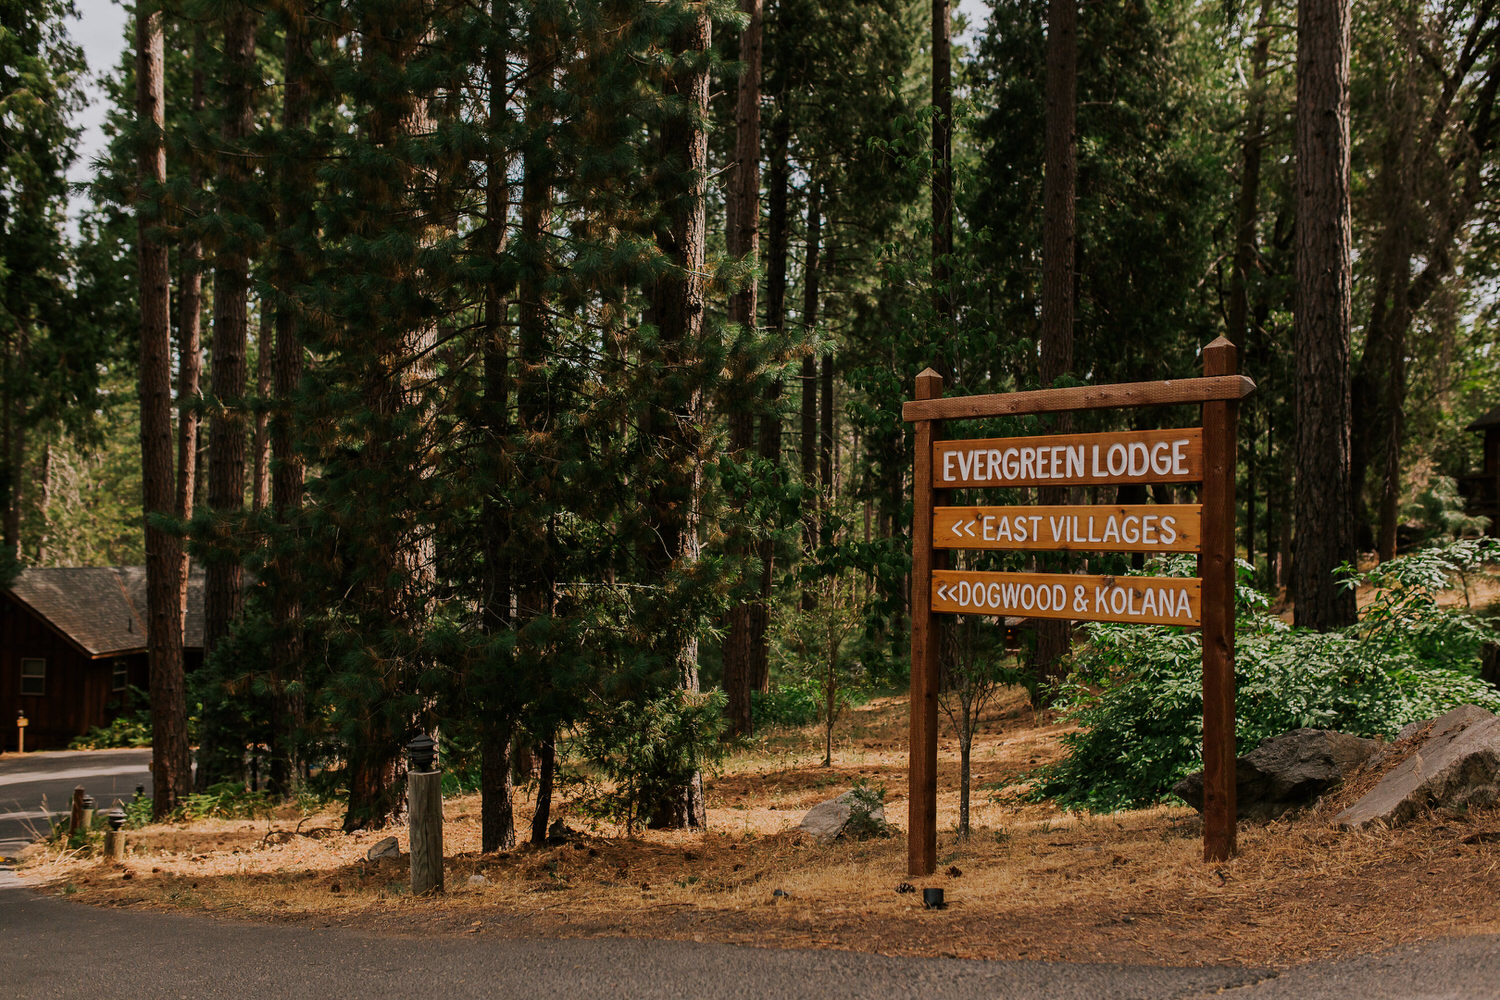 sign for Evergreen Lodge wedding